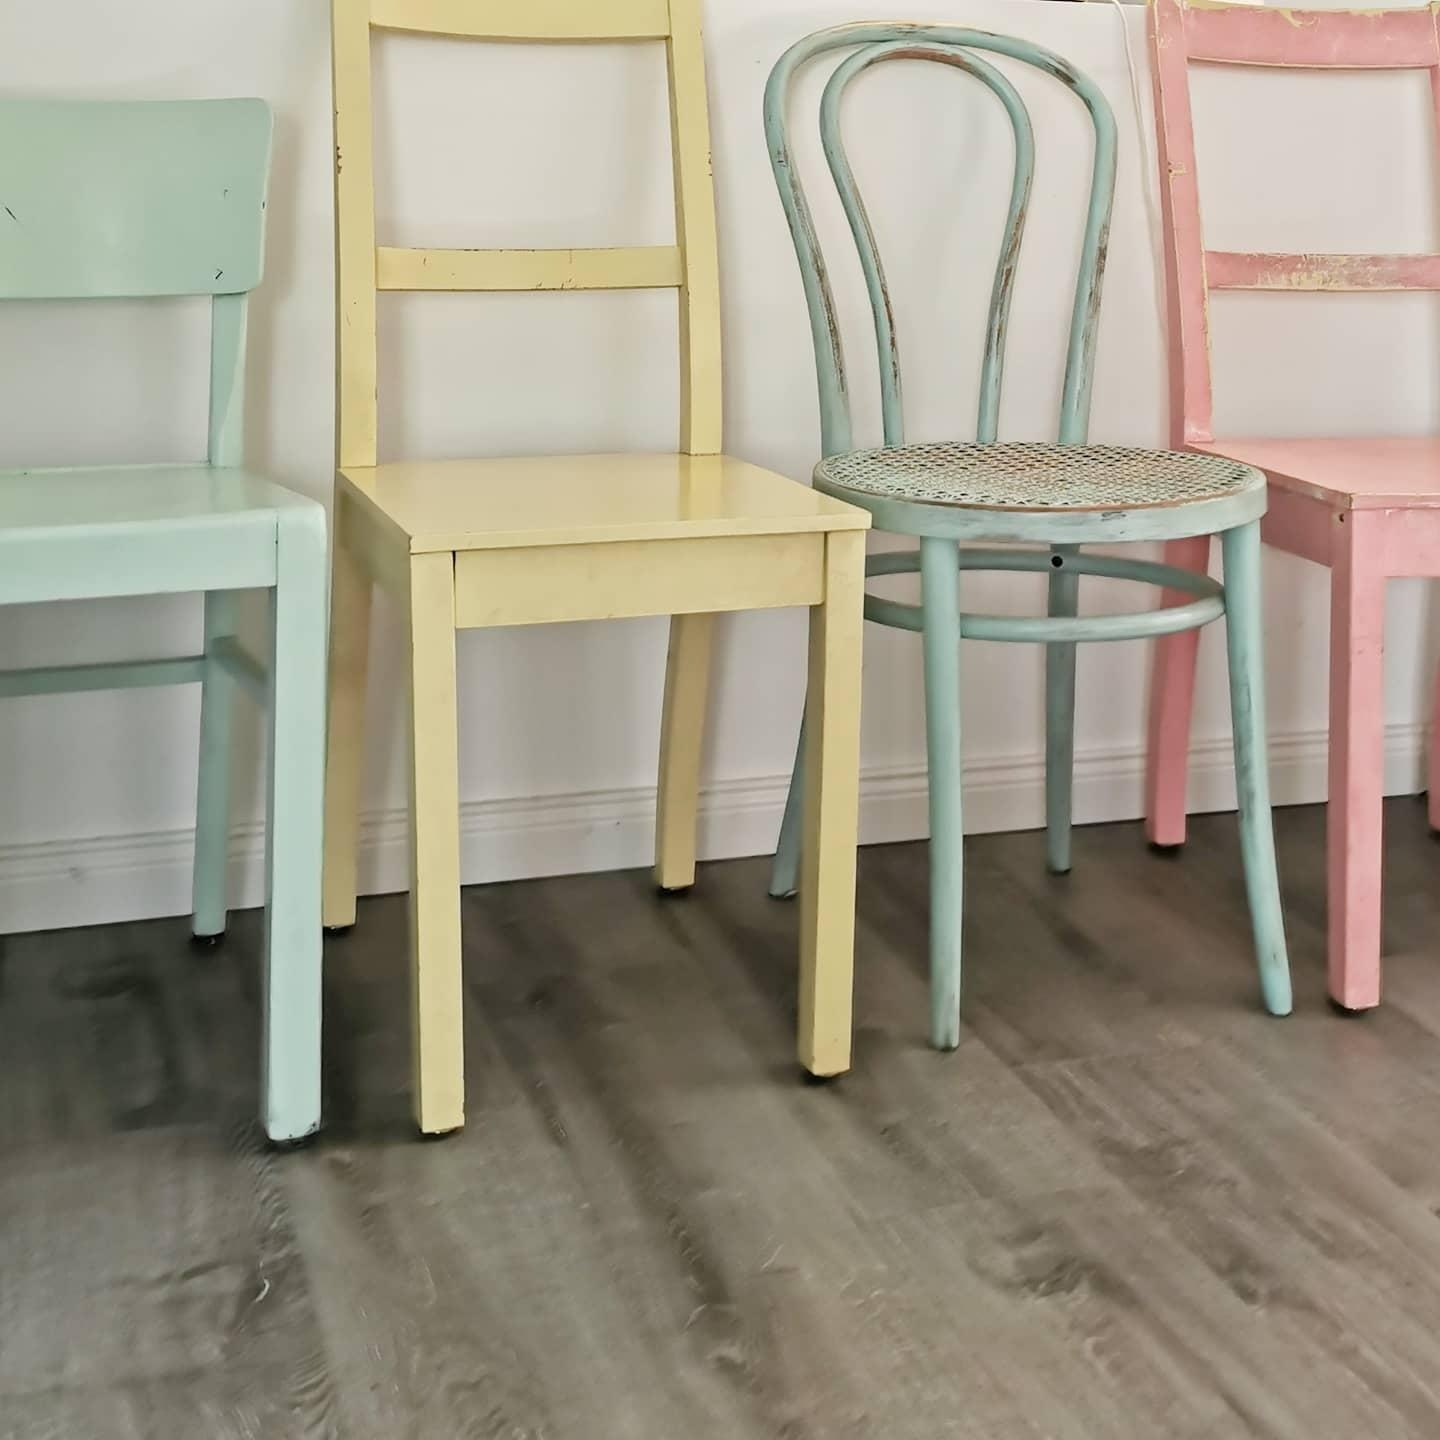 Its all about the mix unsere pastellige stuhlparade stilmix stuehle pastell chairs colourfulinteriors  8475655d a520 4fe6 b6c1 bd3cc01957bb